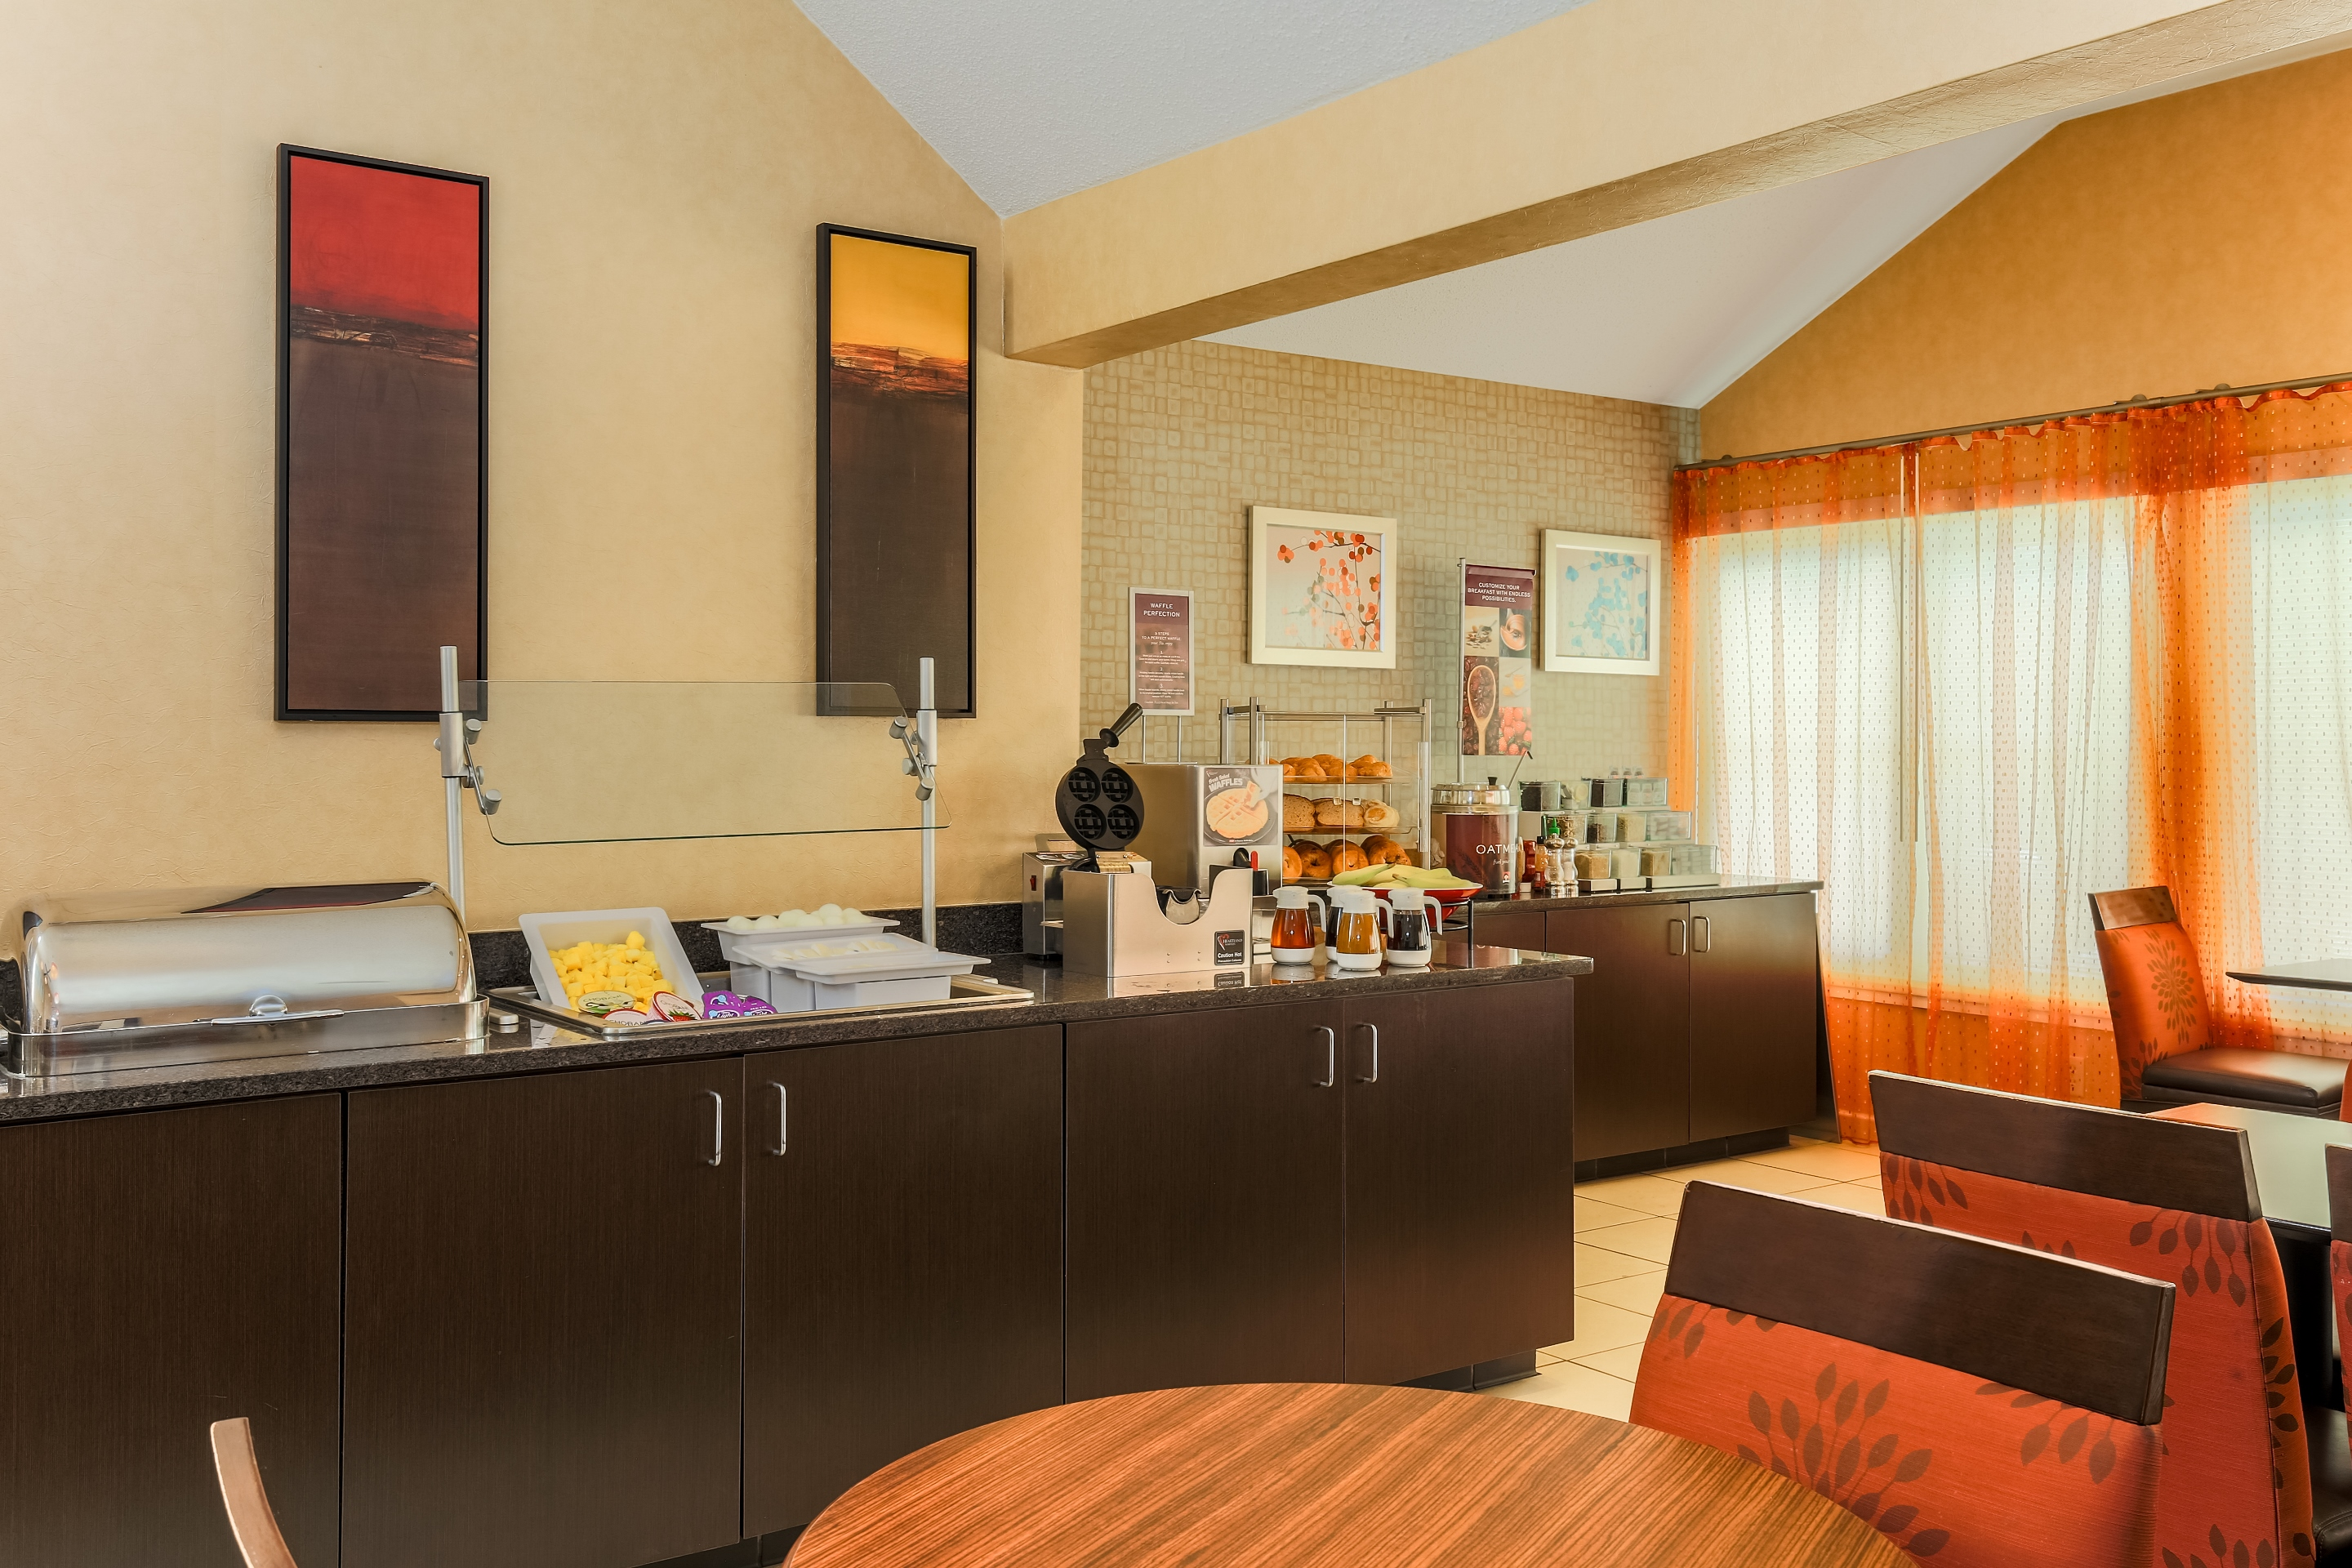 Residence Inn by Marriott St. Louis Galleria image 3